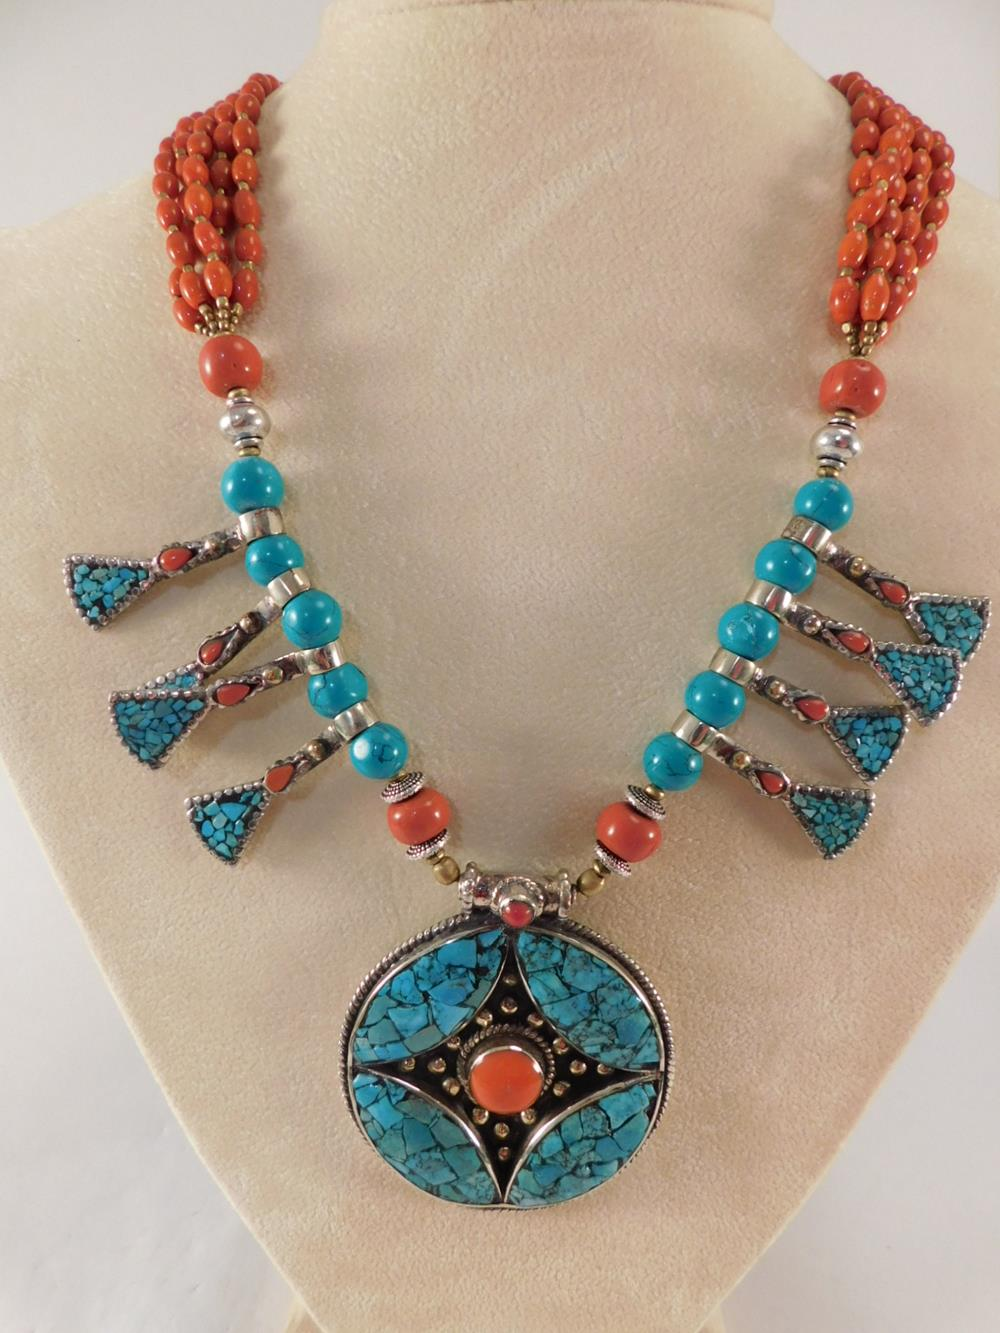 TURQUOISE AND CORAL SQUASH BLOSSOM STYLE NECKLACE NECKLACE